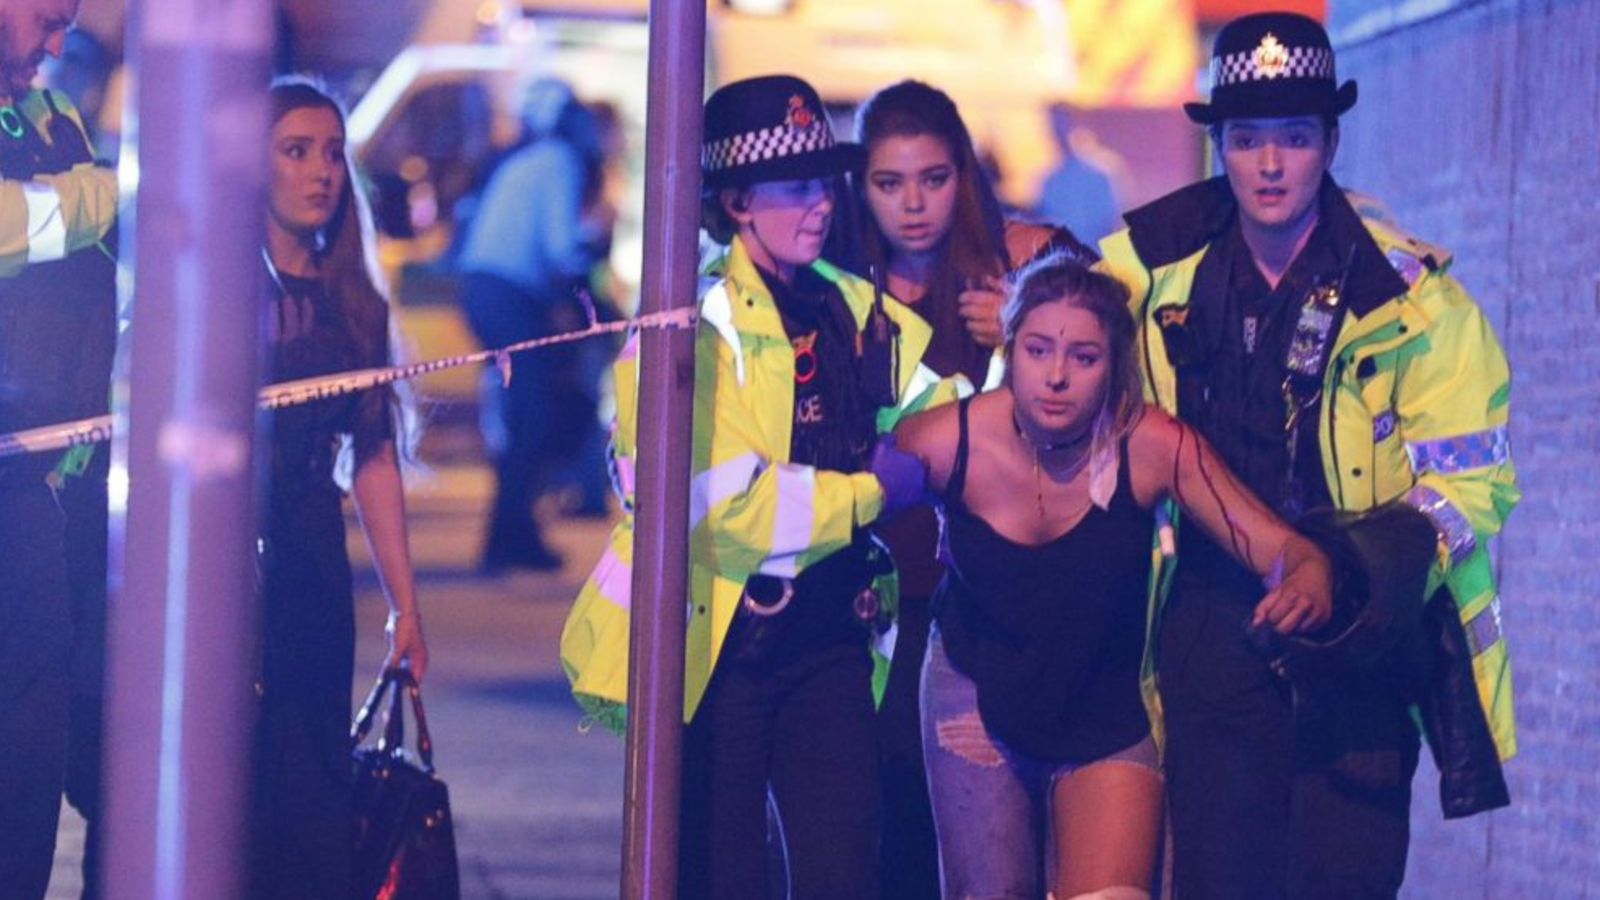 Deaths, injuries after reports of explosion at Ariana Grande concert at Manchester Arena: Police